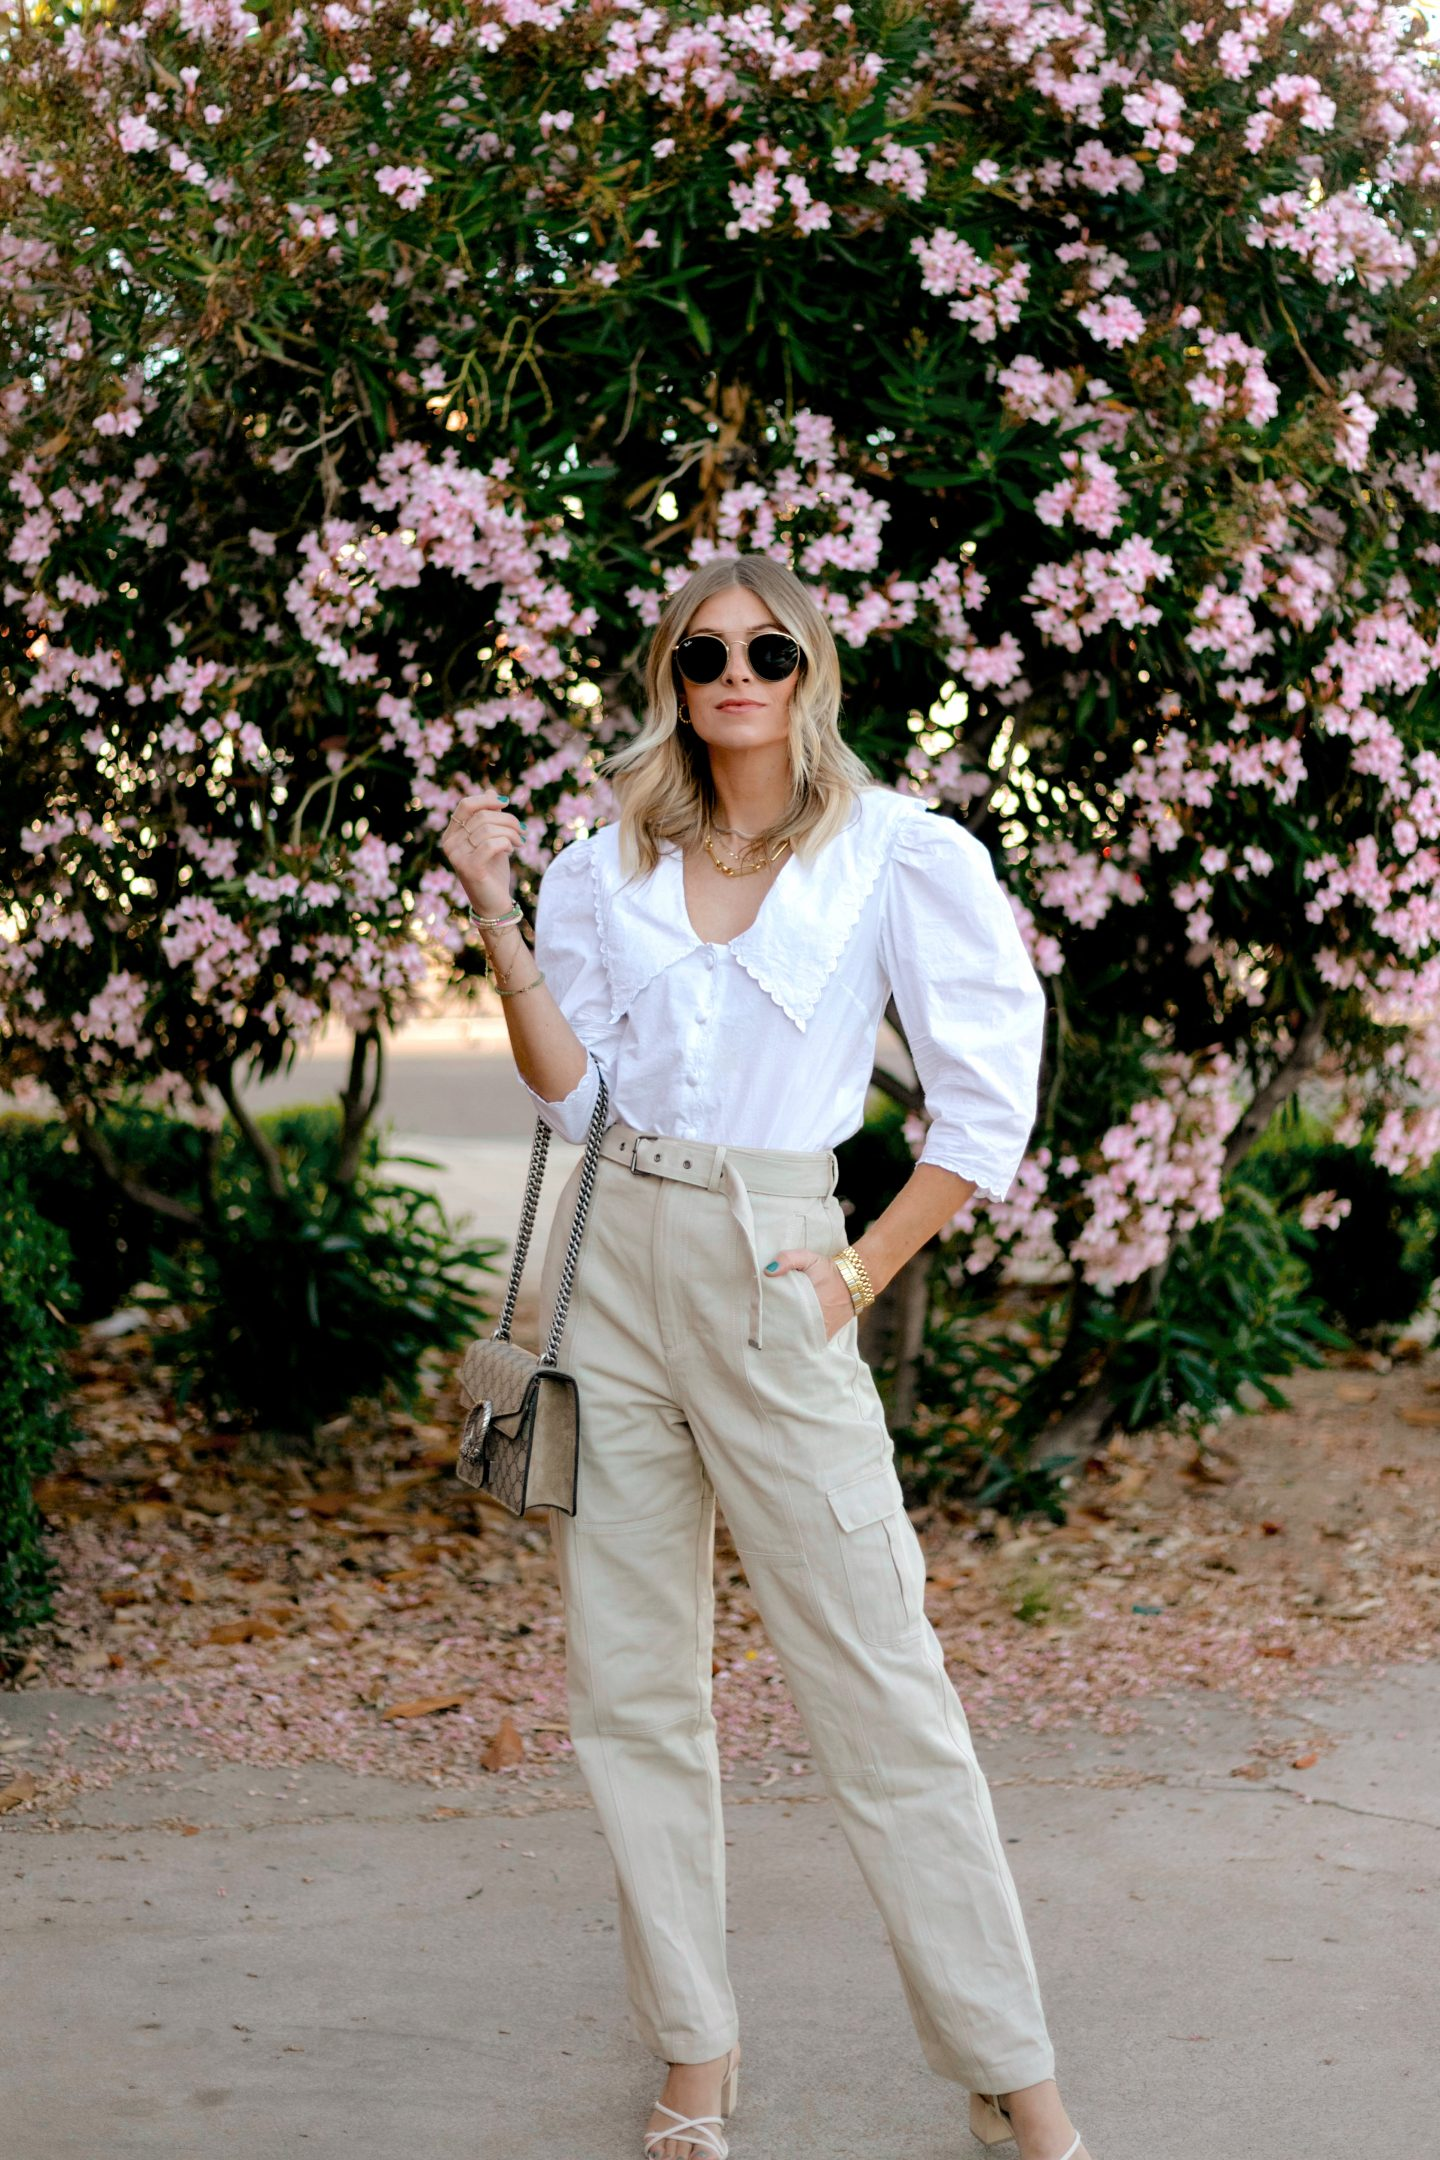 woman wearing pants and white top for summer